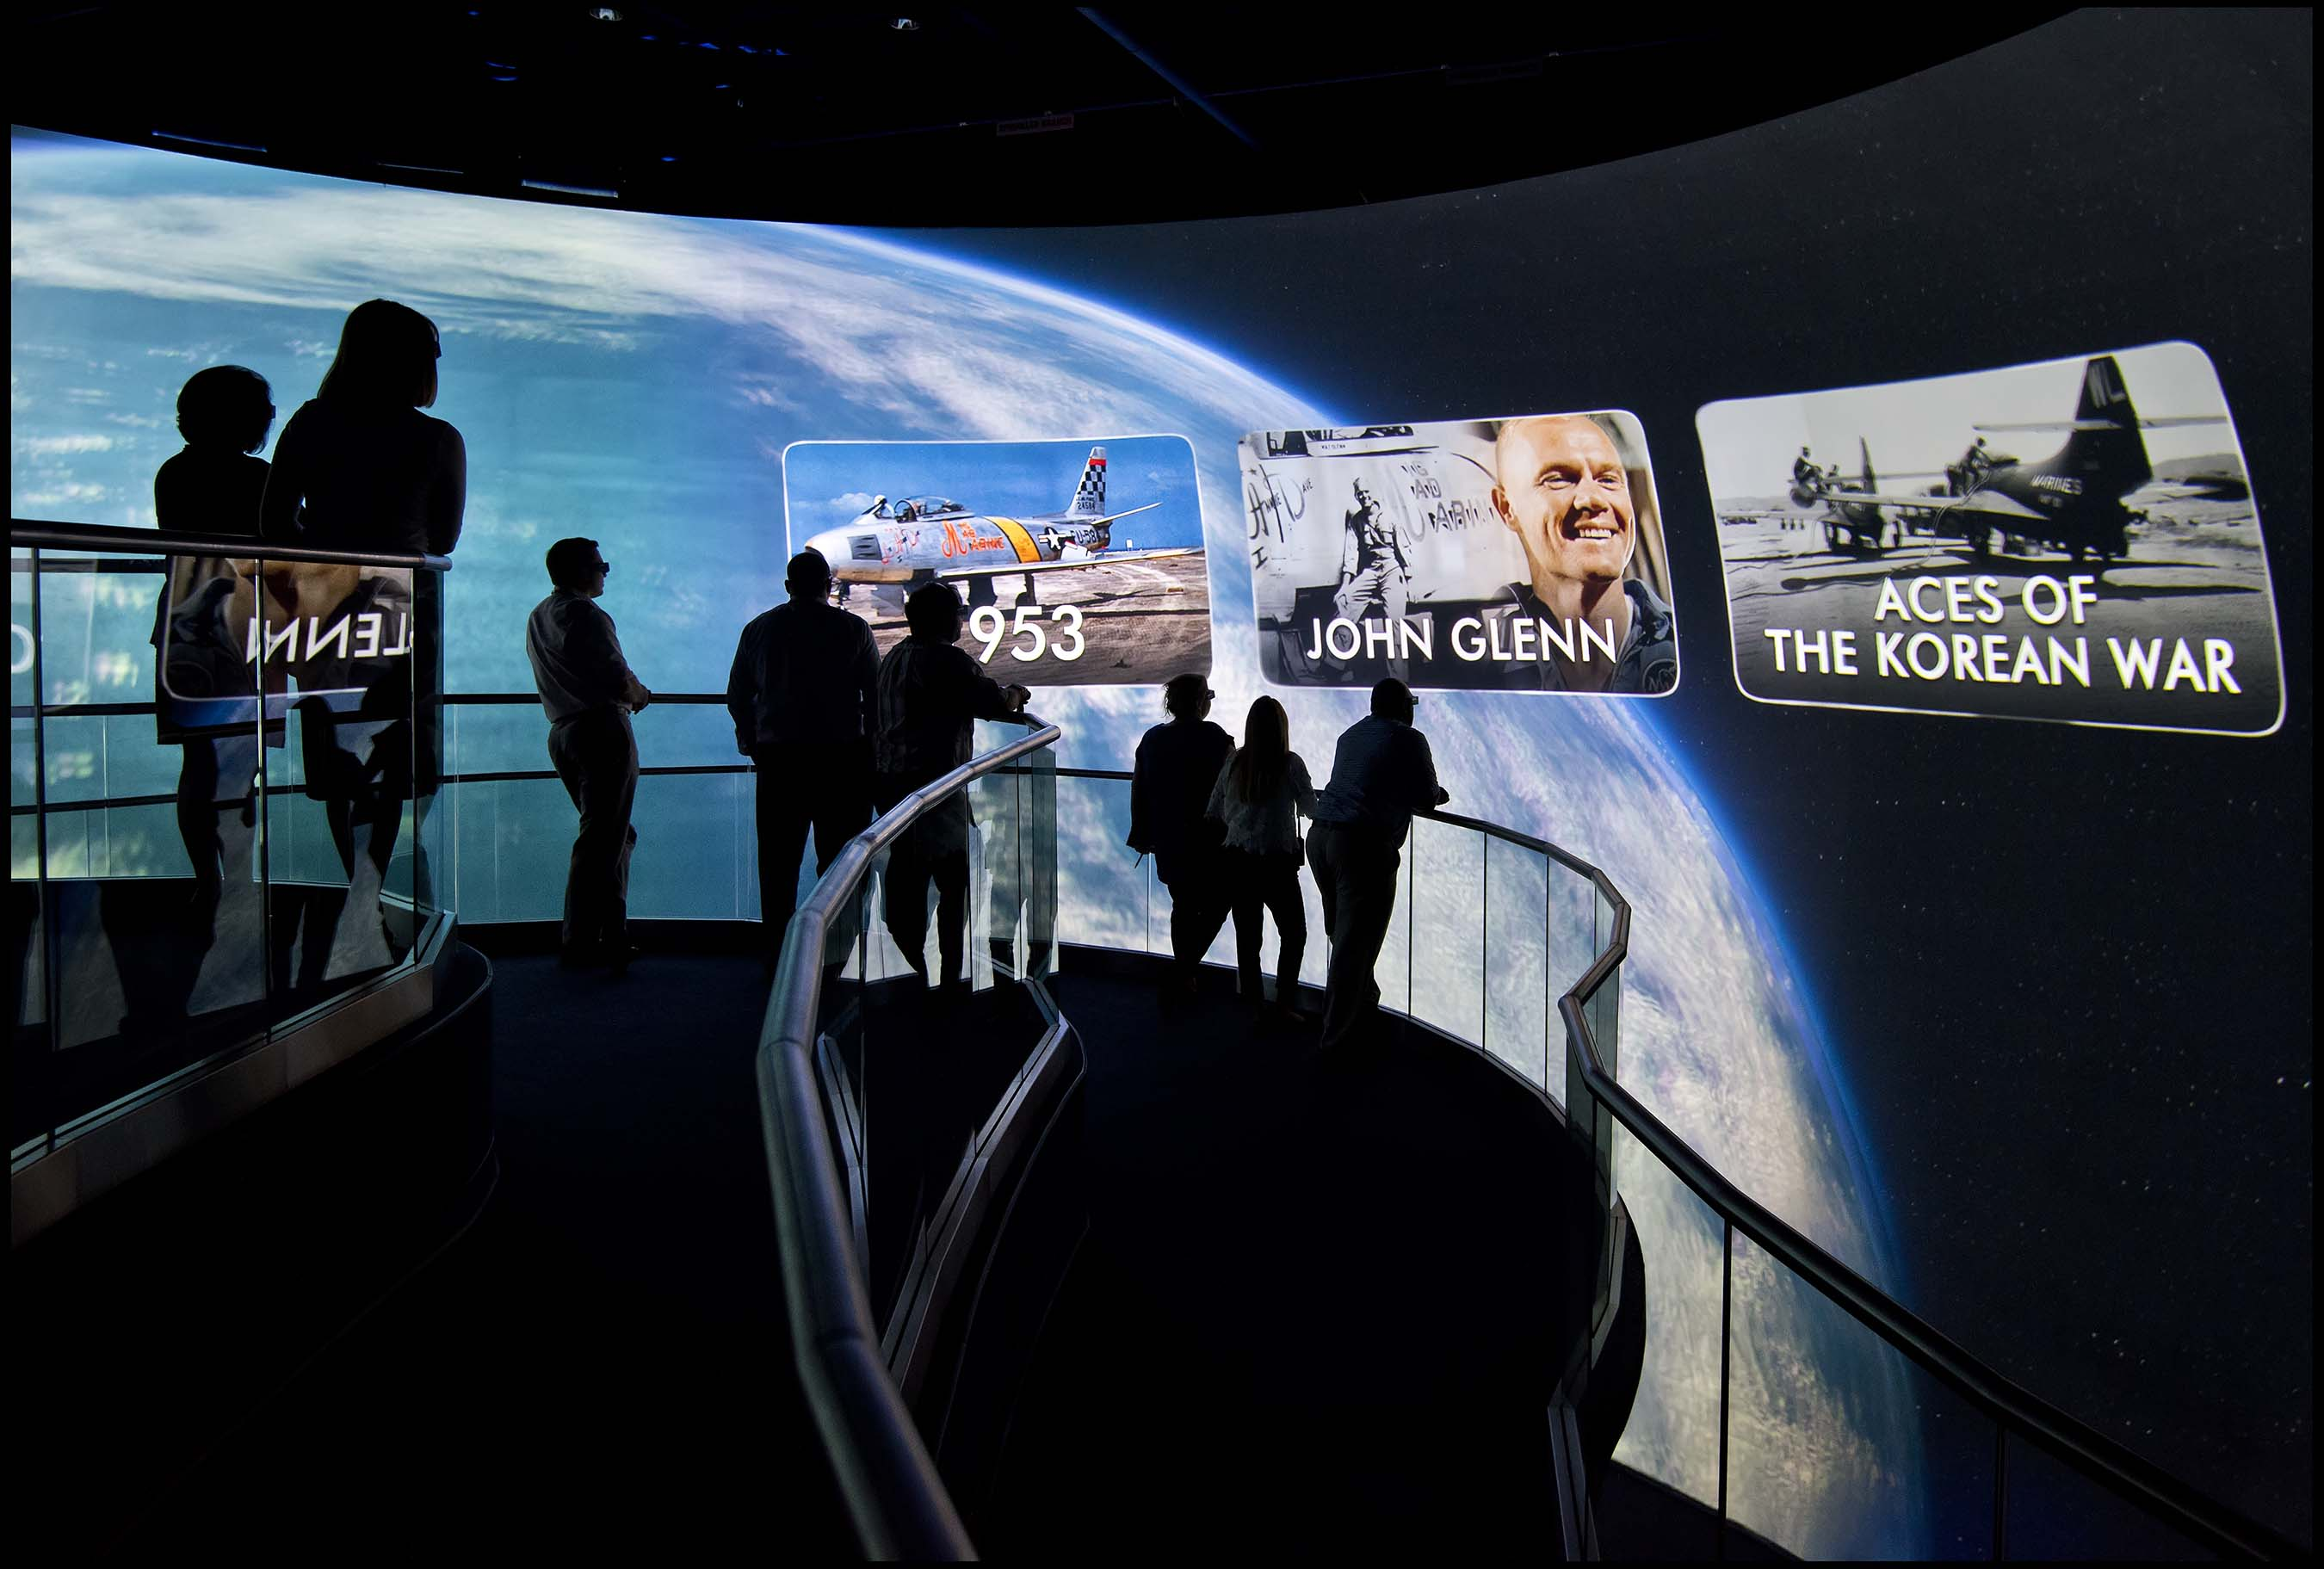 Through the Eyes of a Hero is a custom-built theater featuring a multisensory 4-D experience during which guests vicariously join NASA's heroes and legends on the most perilous stages of their missions.